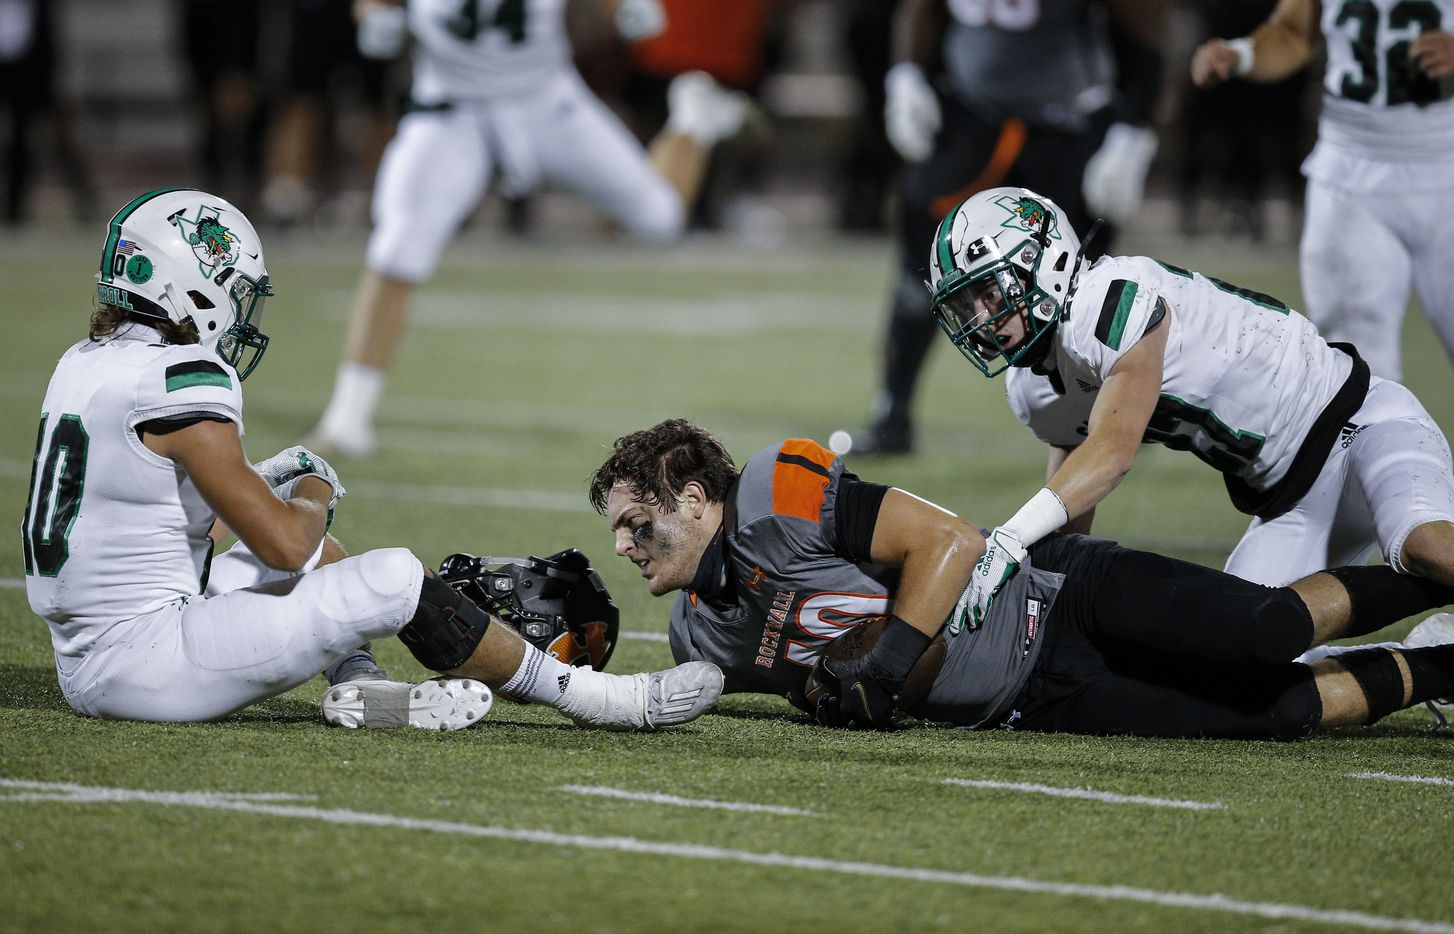 Southlake Carroll sophomore defensive back Jon Cox (10) and senior defensive back Mason Grawe (27) tackle Rockwall junior tight end Brenna Ray (40) during the first half of a high school football game at Wilkerson-Sanders Stadium in Rockwall, Thursday, October 8, 2020. (Brandon Wade/Special Contributor)